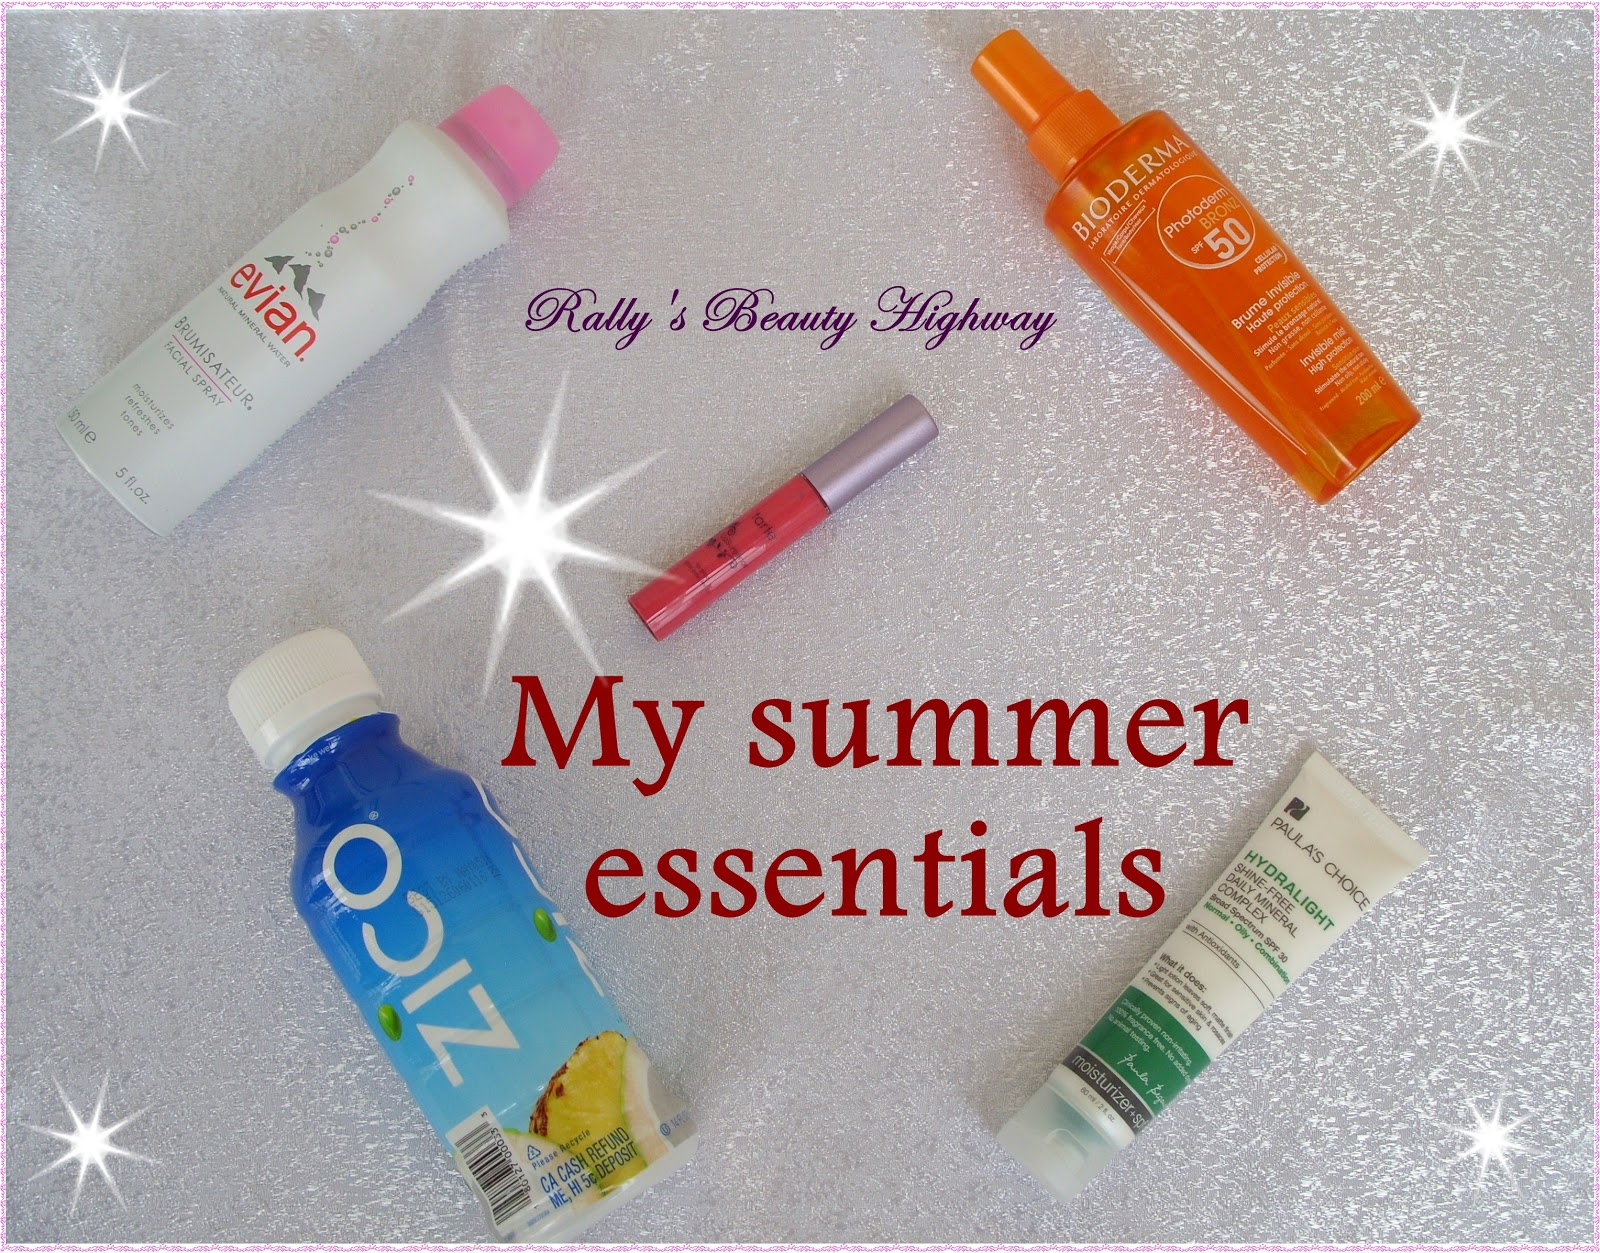 Summer essentials, cosmetics